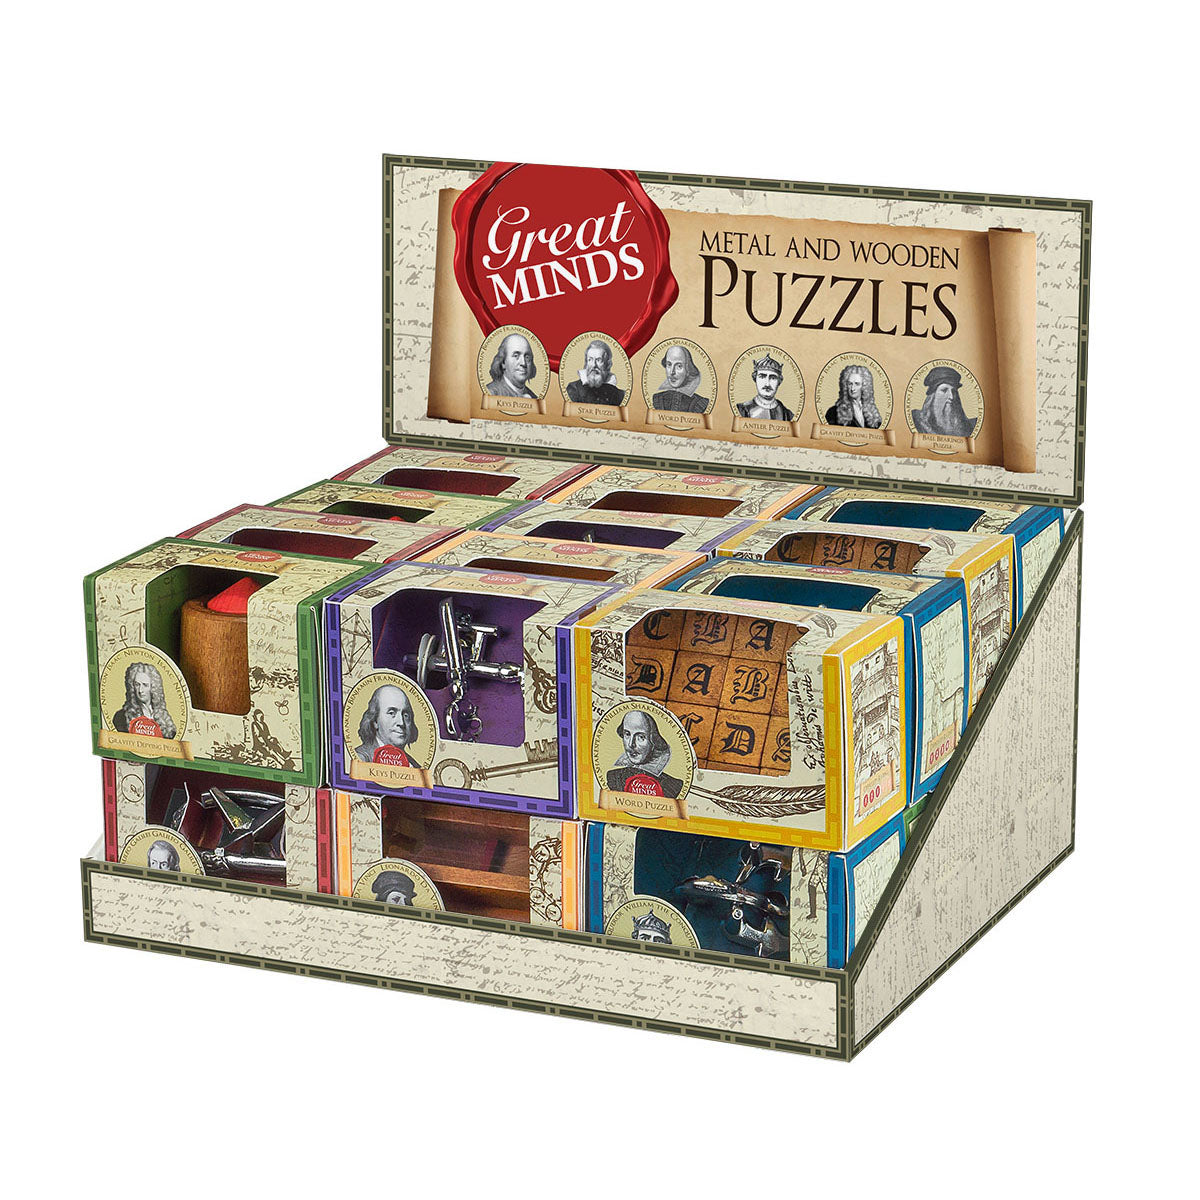 Great Minds Metal and Wooden Puzzles